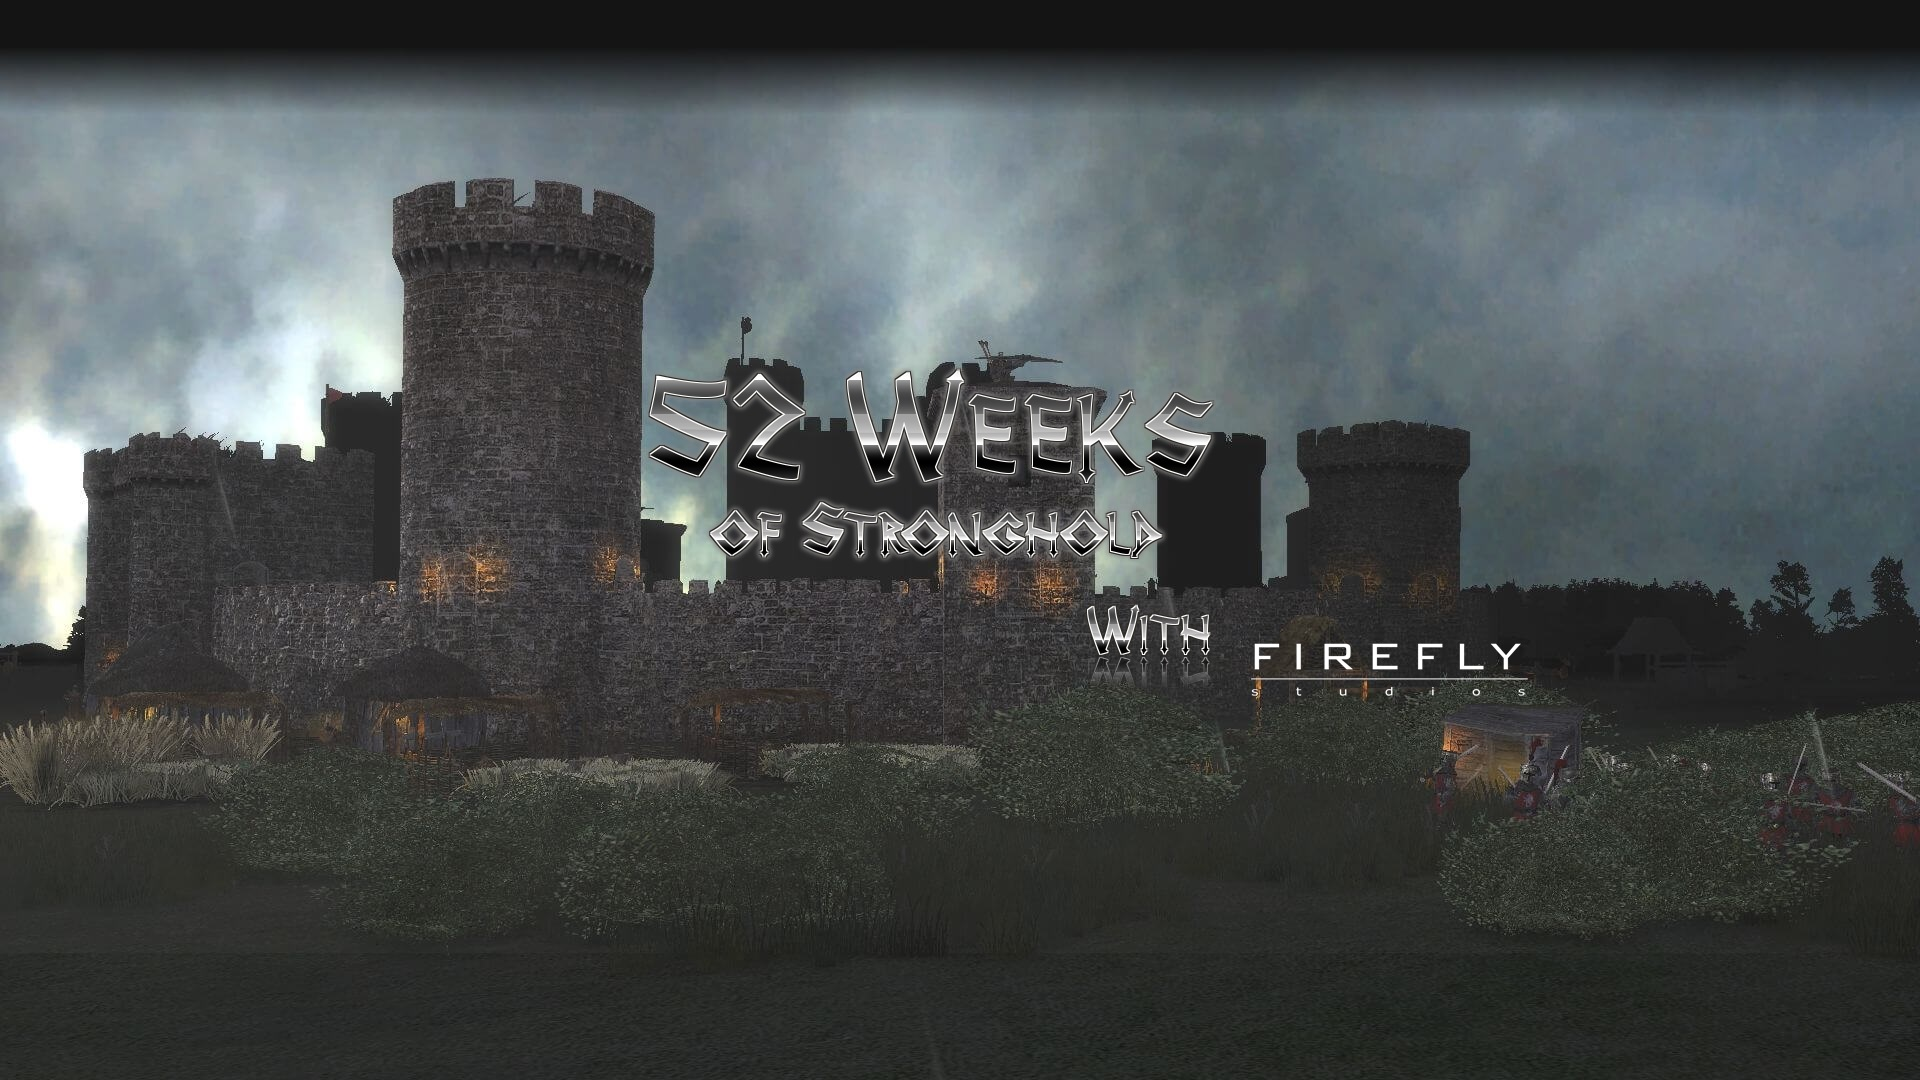 52-weeks-of-stronghold-with-firefly-studios.jpg